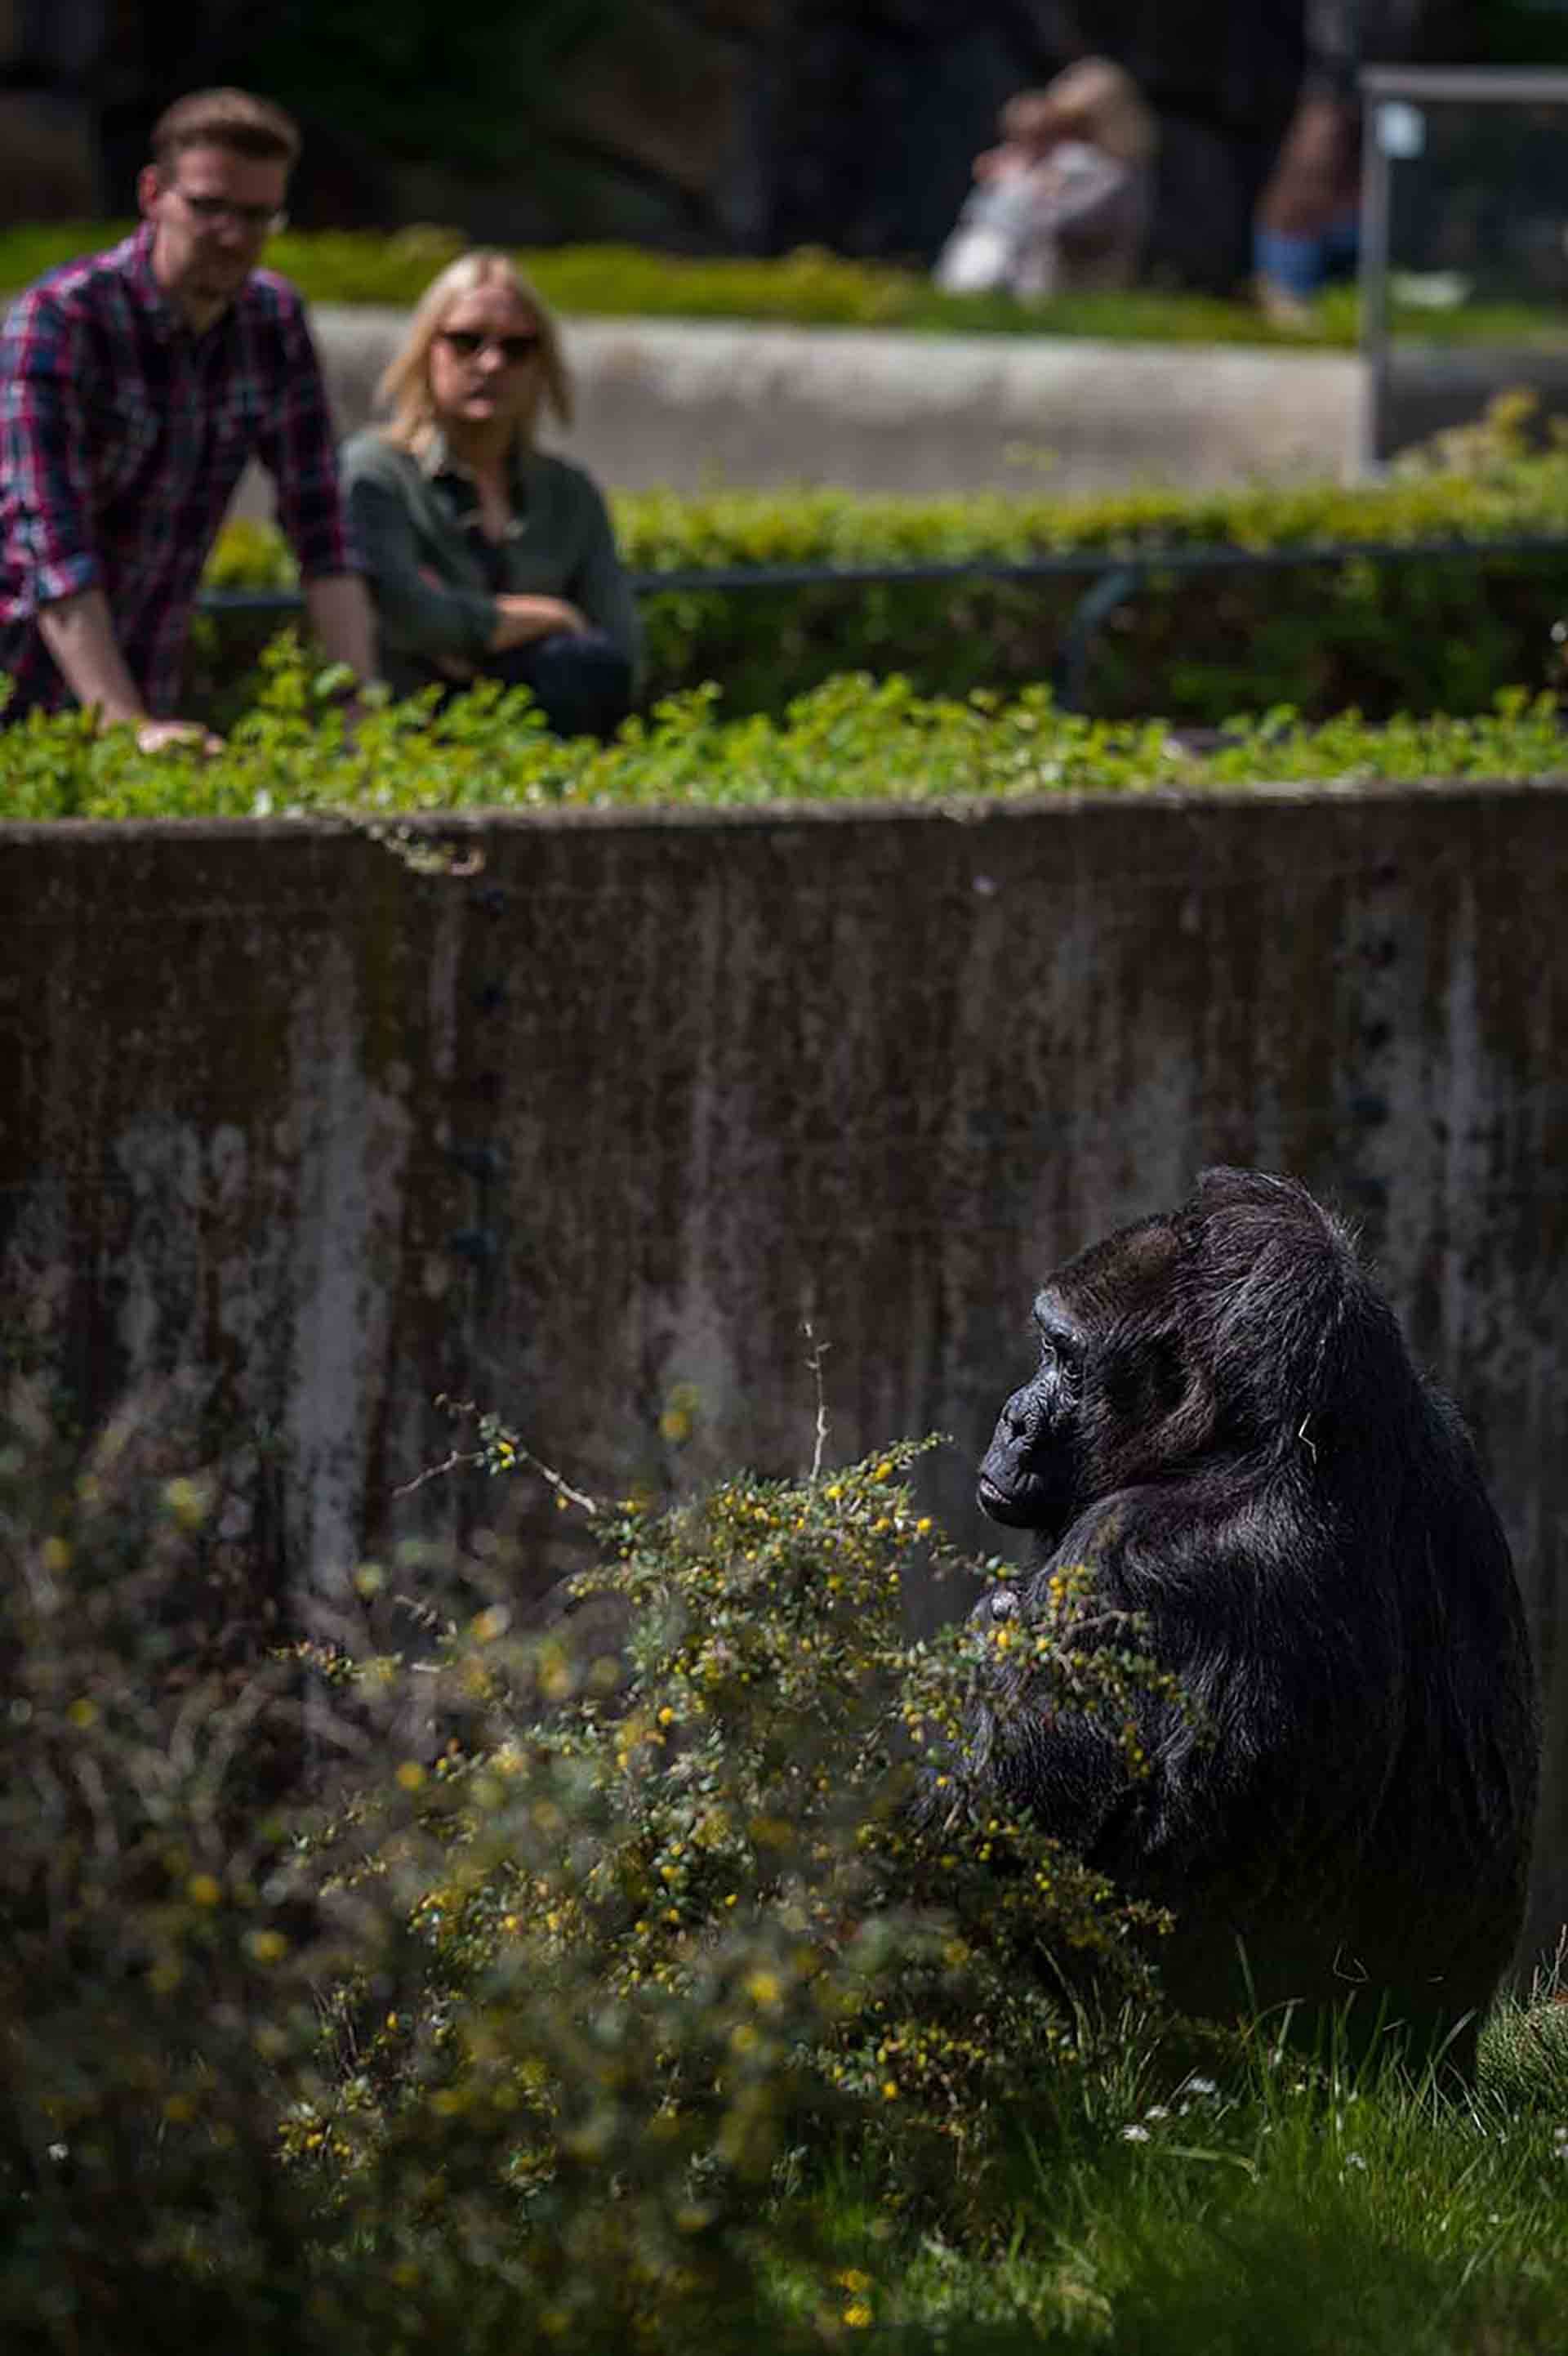 Visitors Watch A Gorilla At A Zoo In Germany